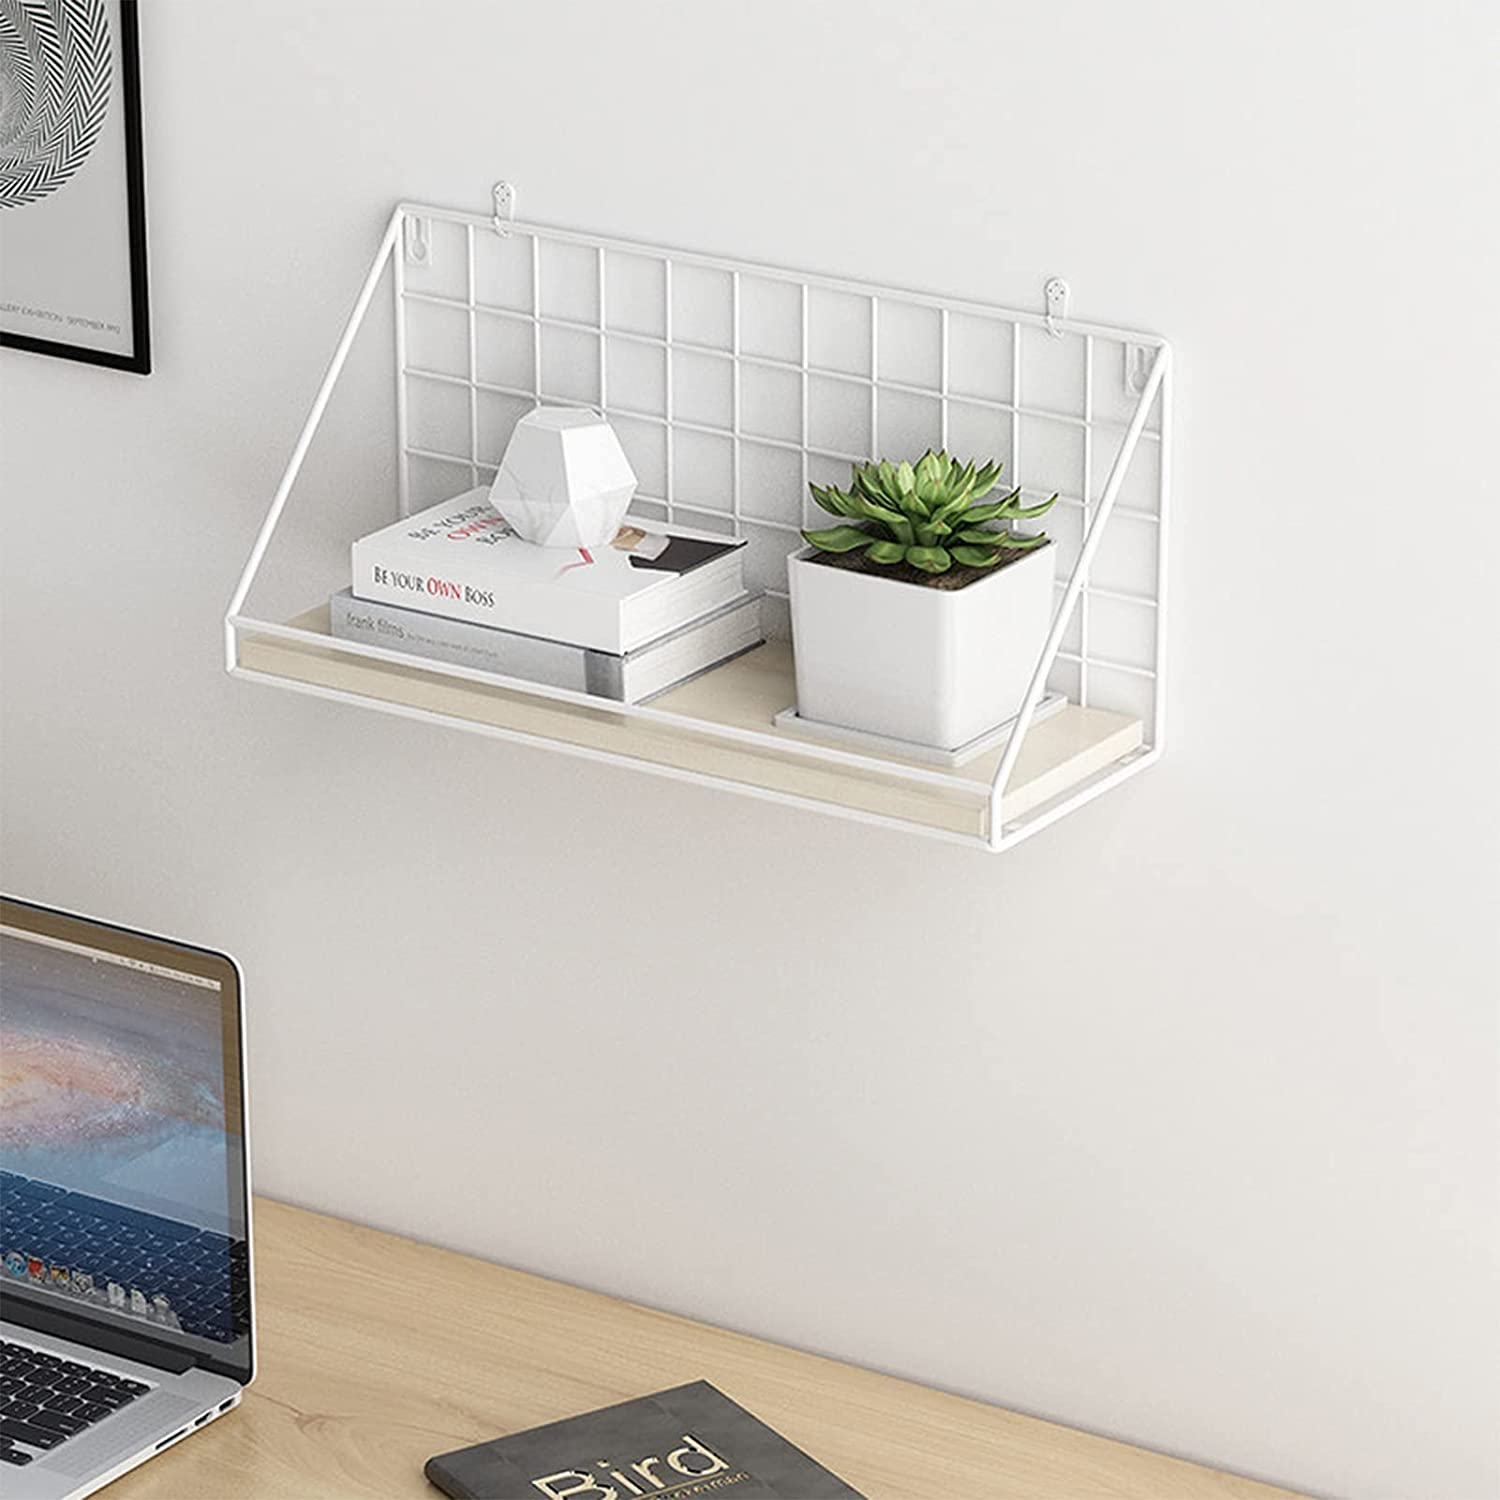 QAX Floating Shelves for Wall wi Storage Max 72% OFF Sizes 3 High order Shelf